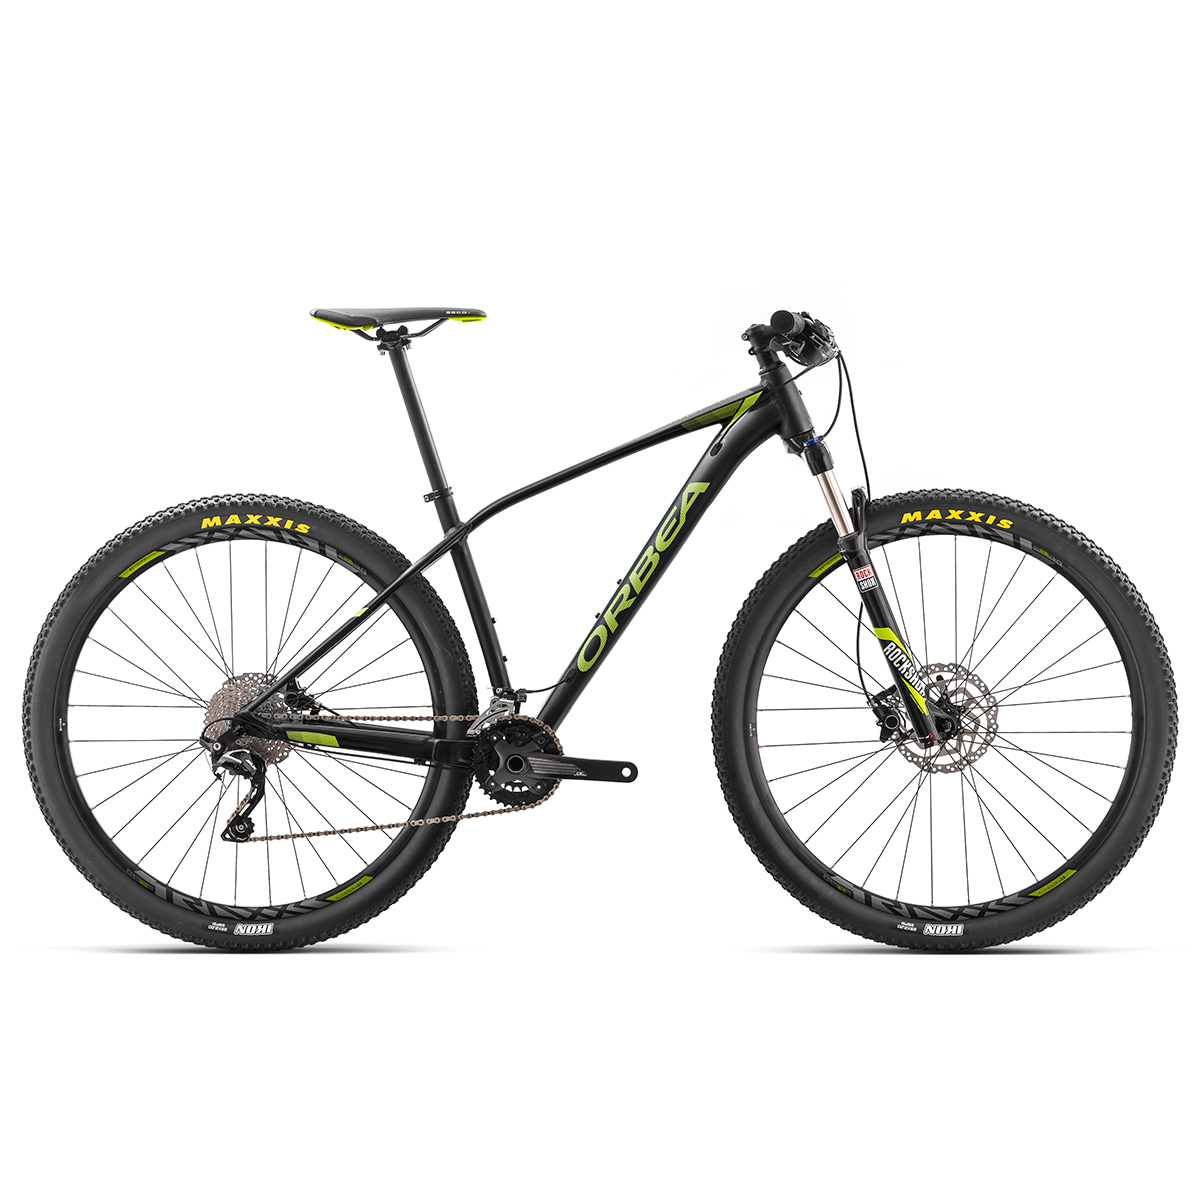 "Orbea Alma H50 27,5"" mountainbike med 20 gear - Sort/grøn"